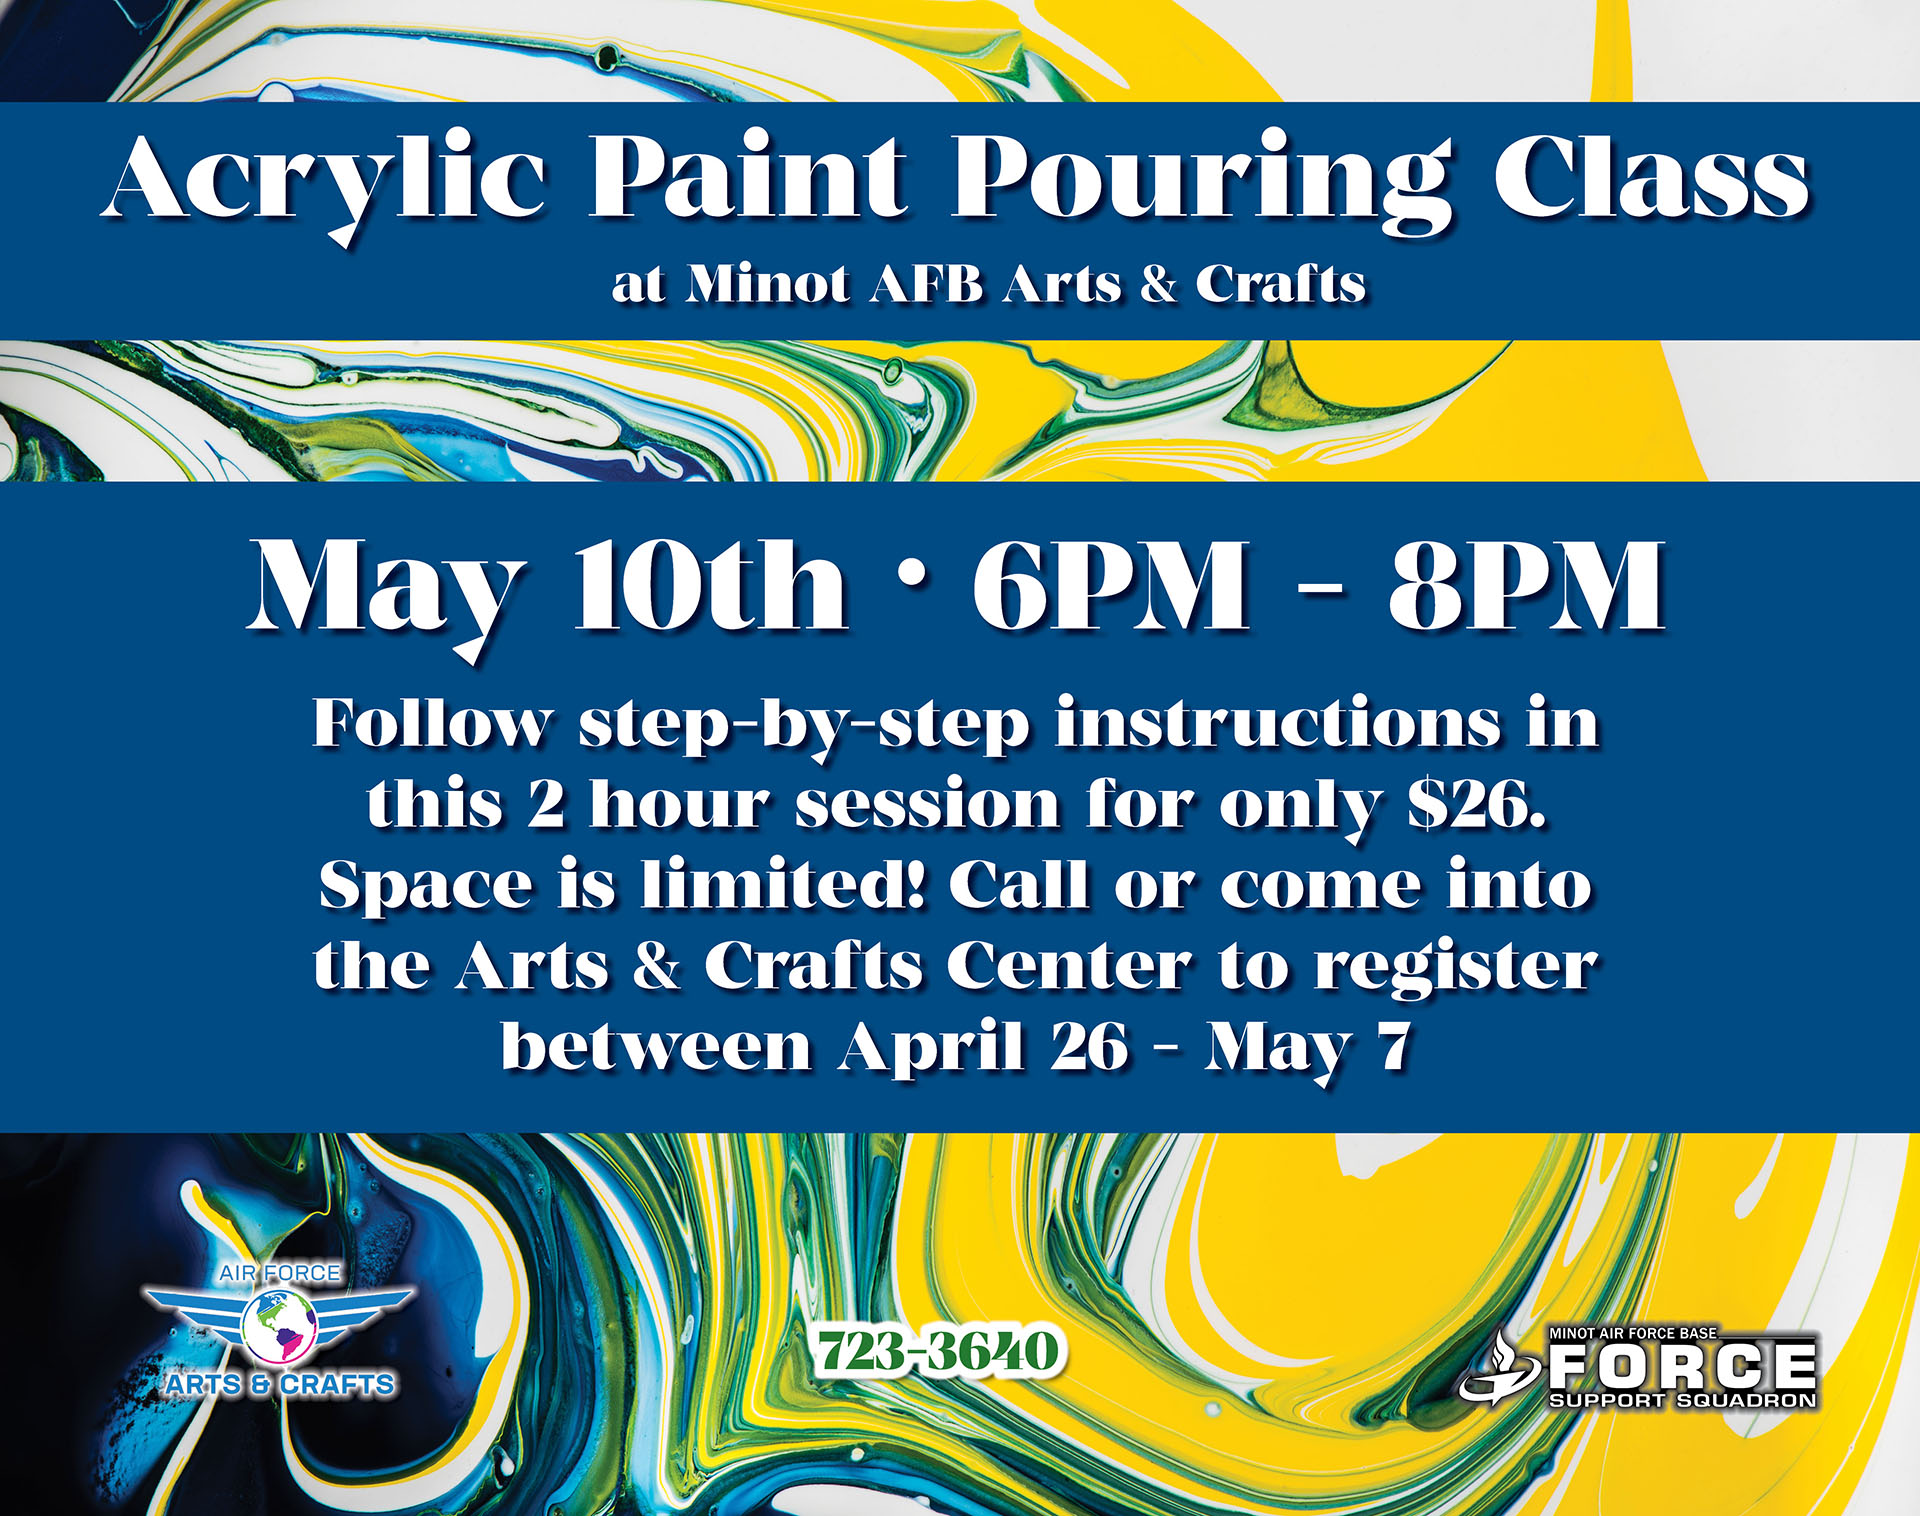 Registration Begins: Acrylic Paint Pouring